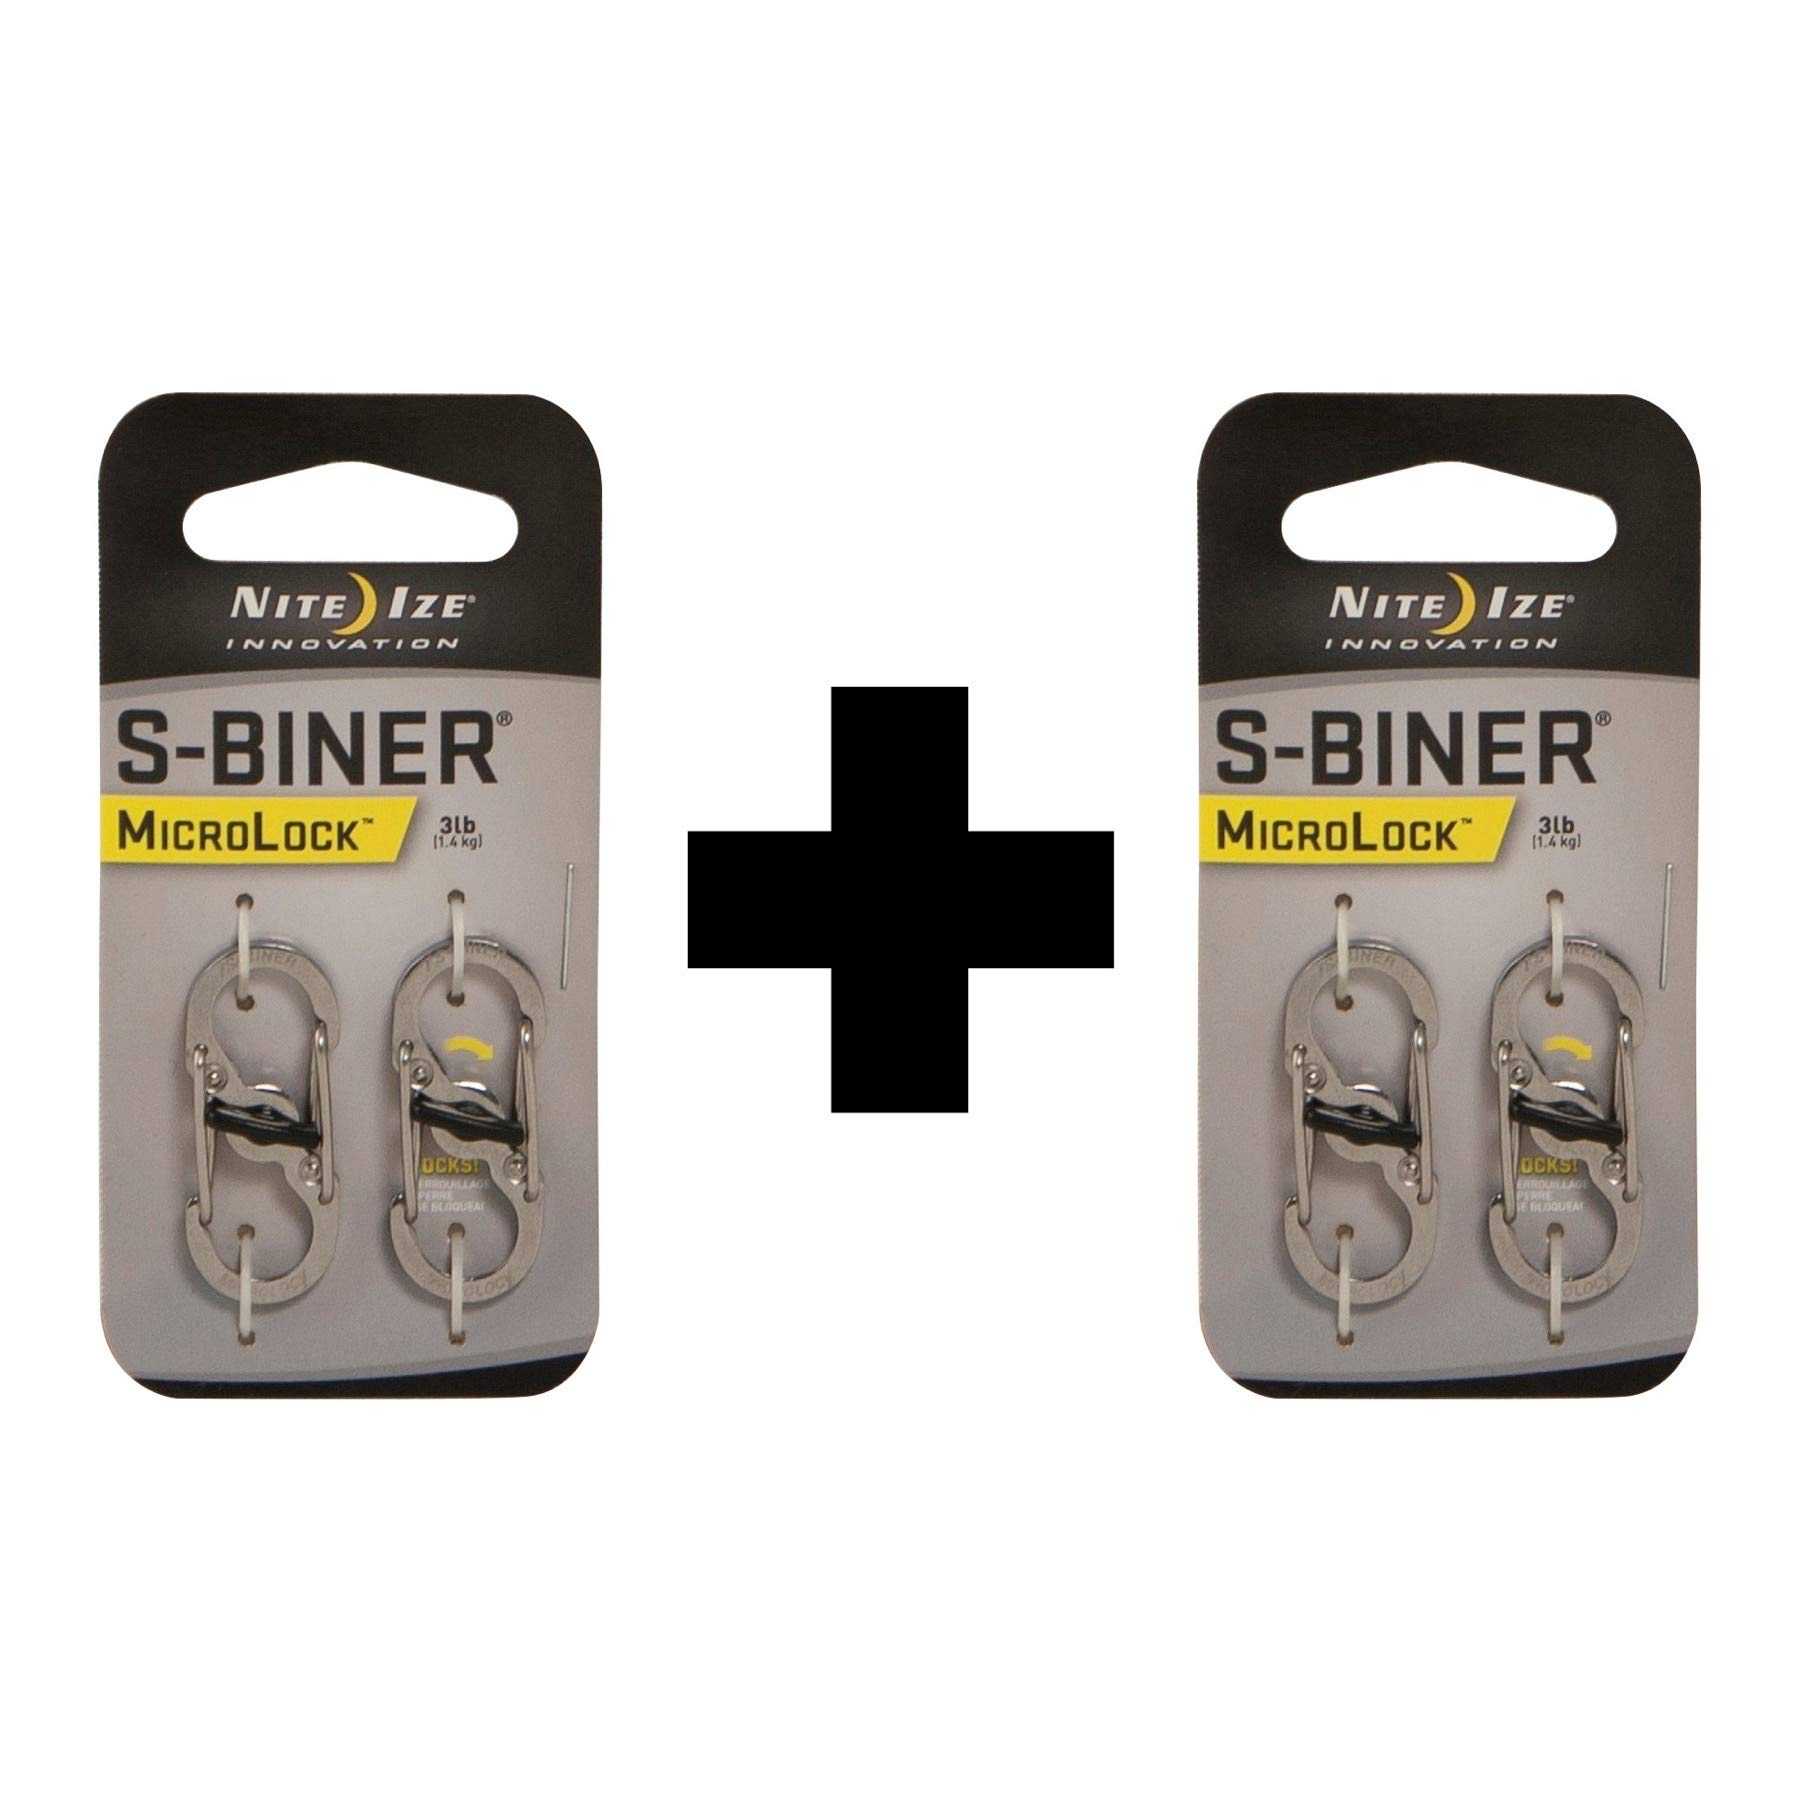 MicroLock Steel S-Biner 2 Pack Color:Silver Size:Pack of 2 by Nite Ize